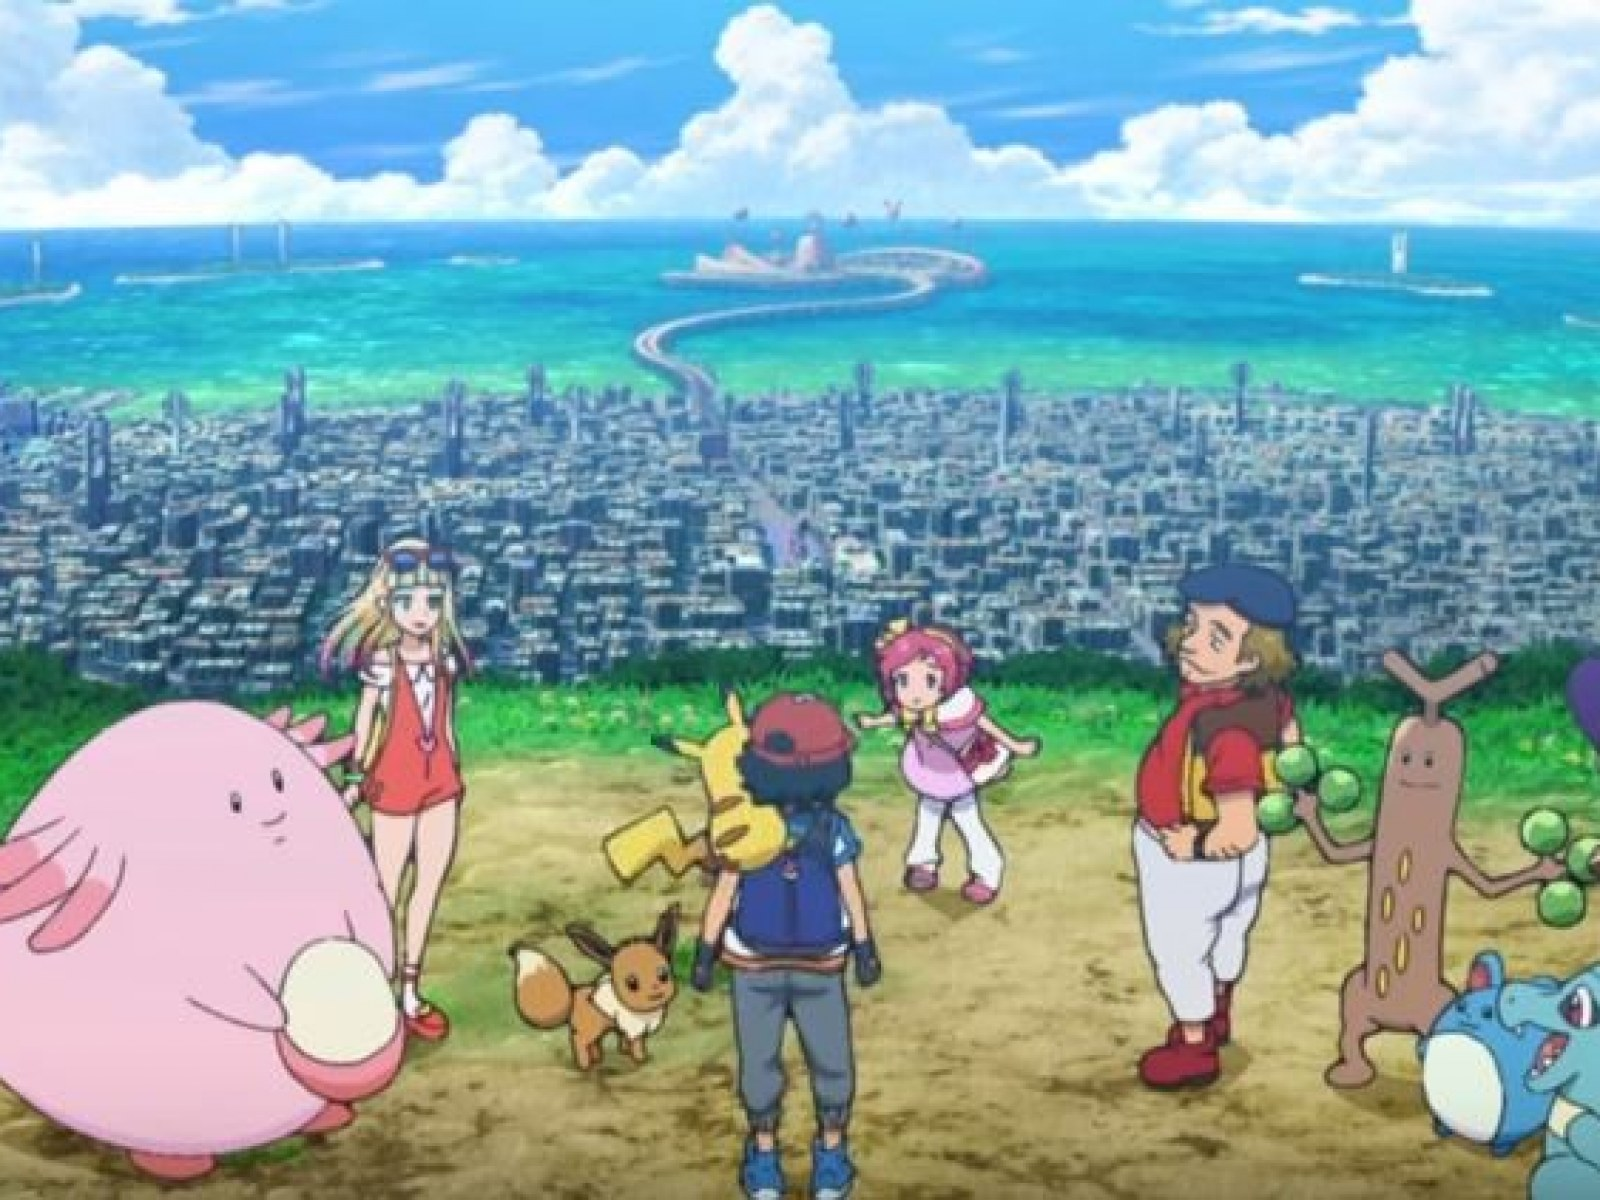 Pokemon The Movie Everyone S Story Trailer Reveals First Look At